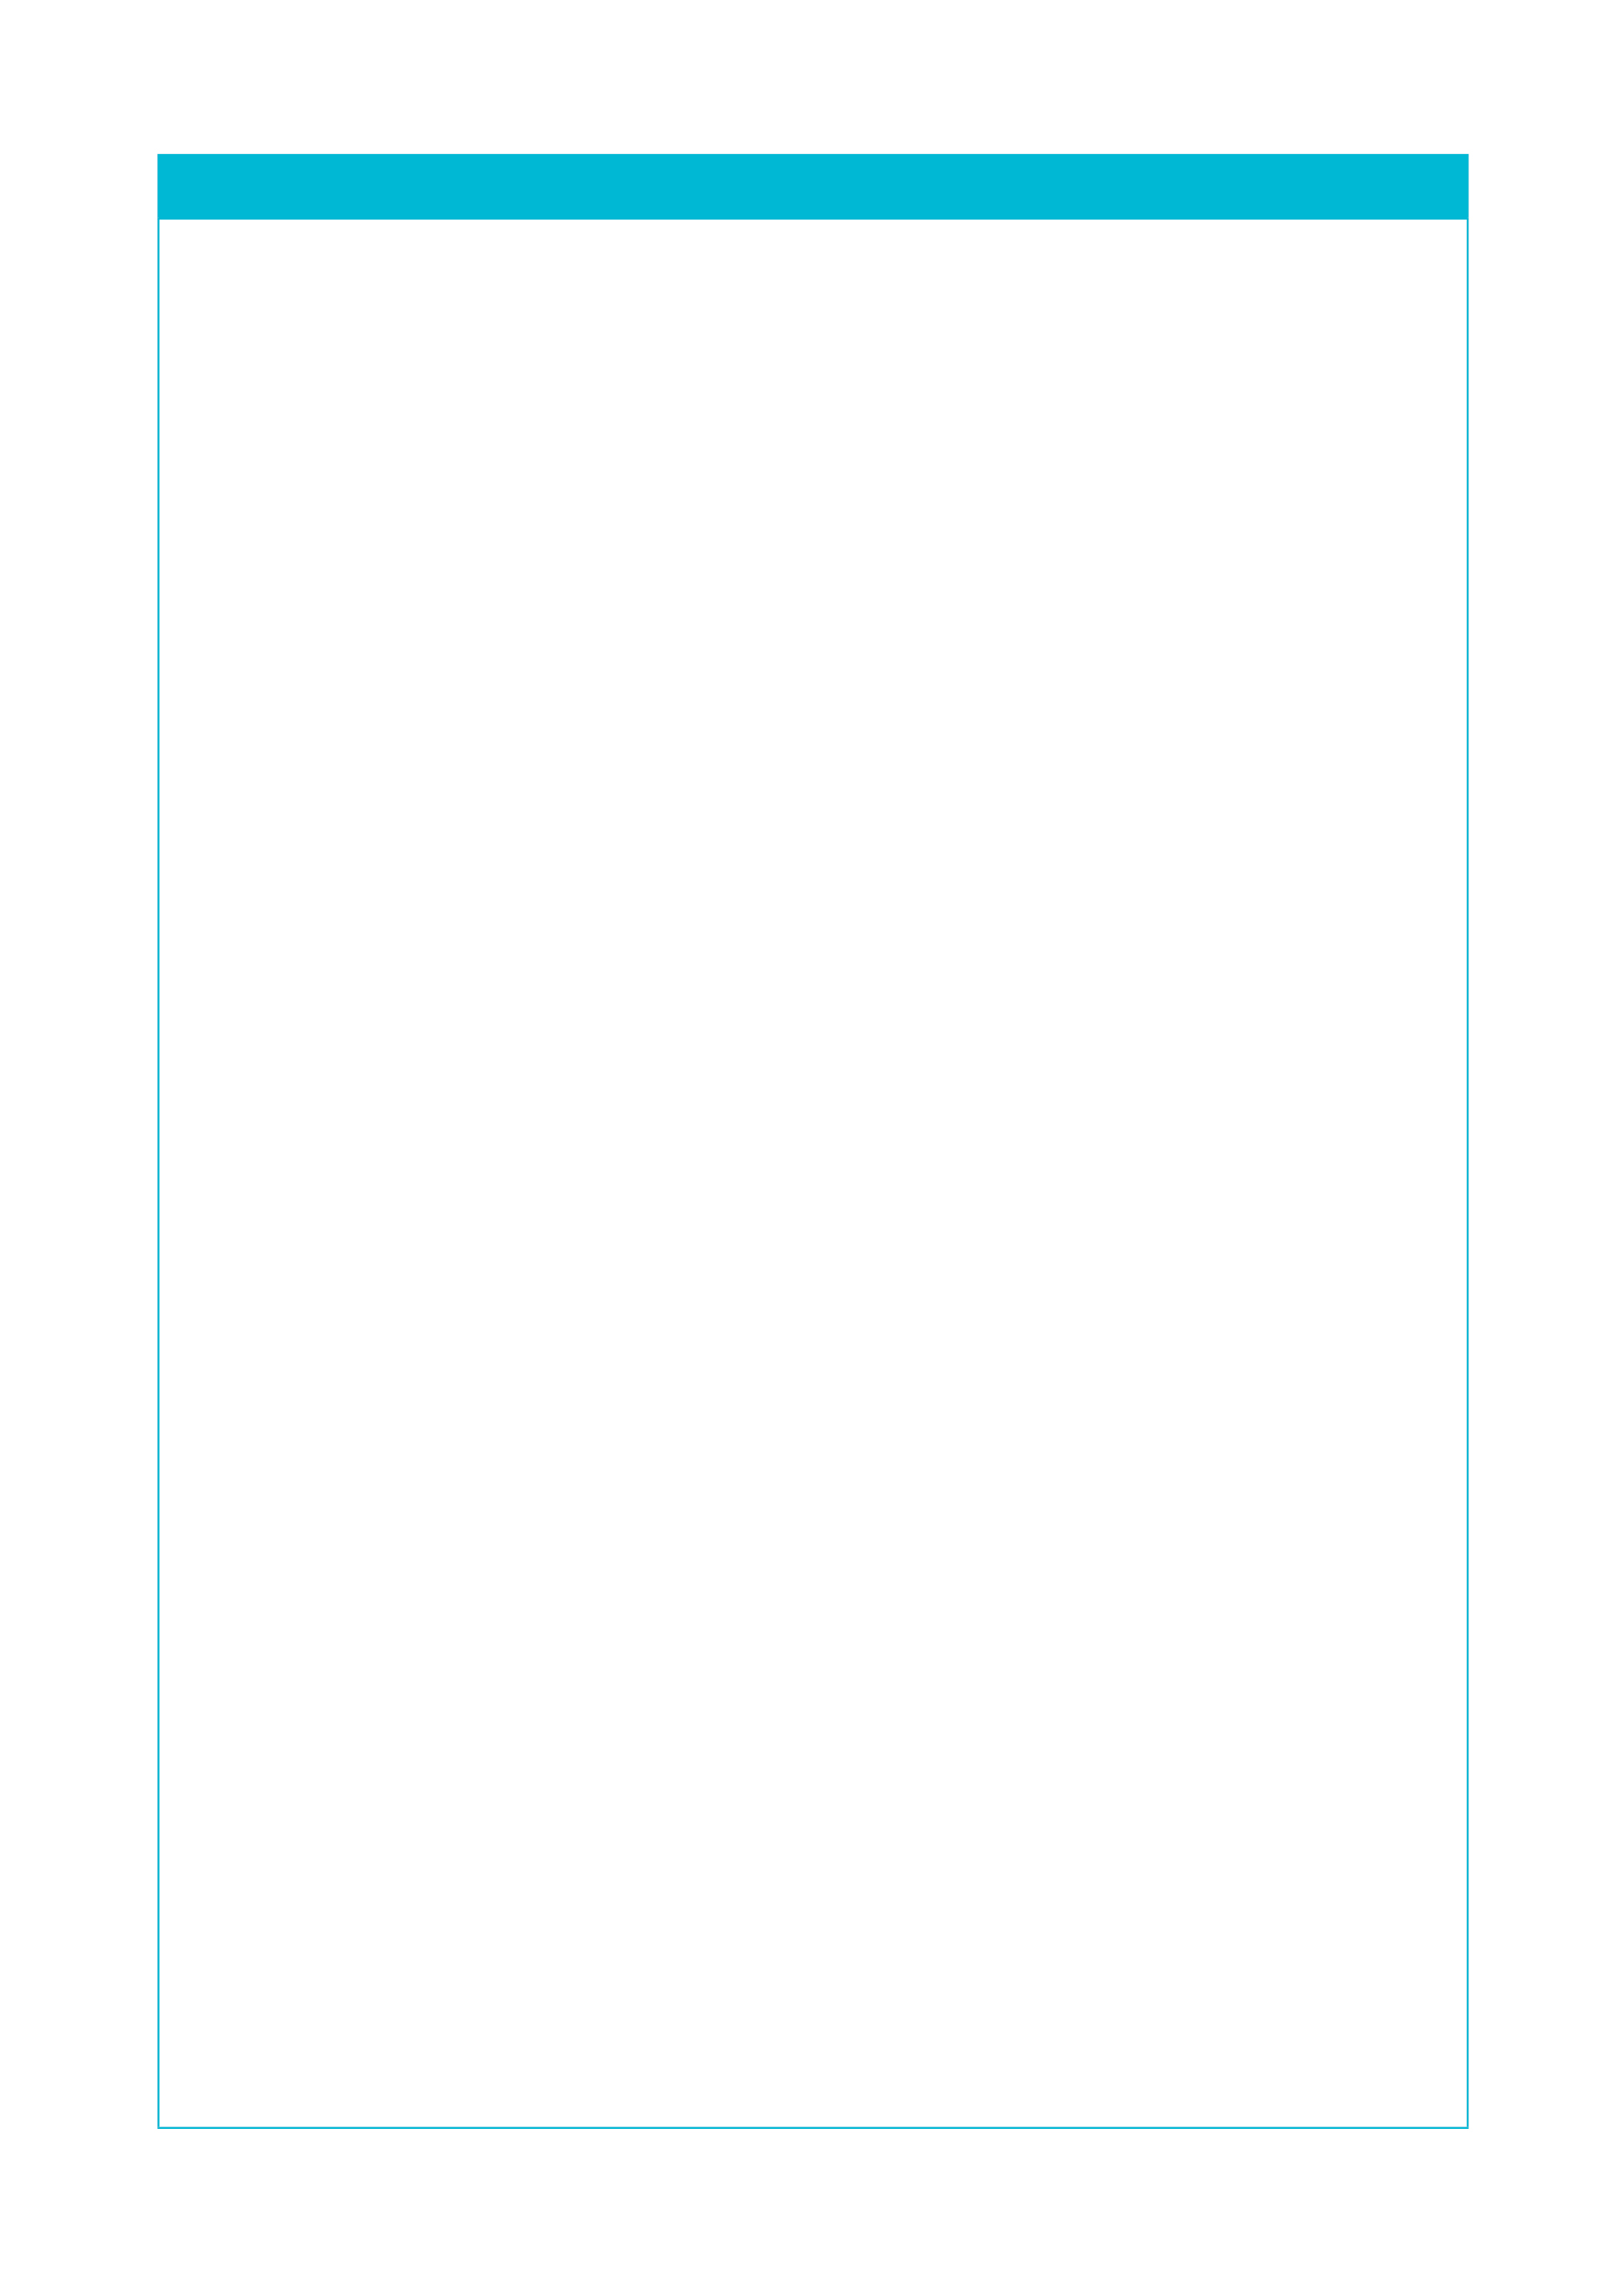 Blank Policy Page Plain